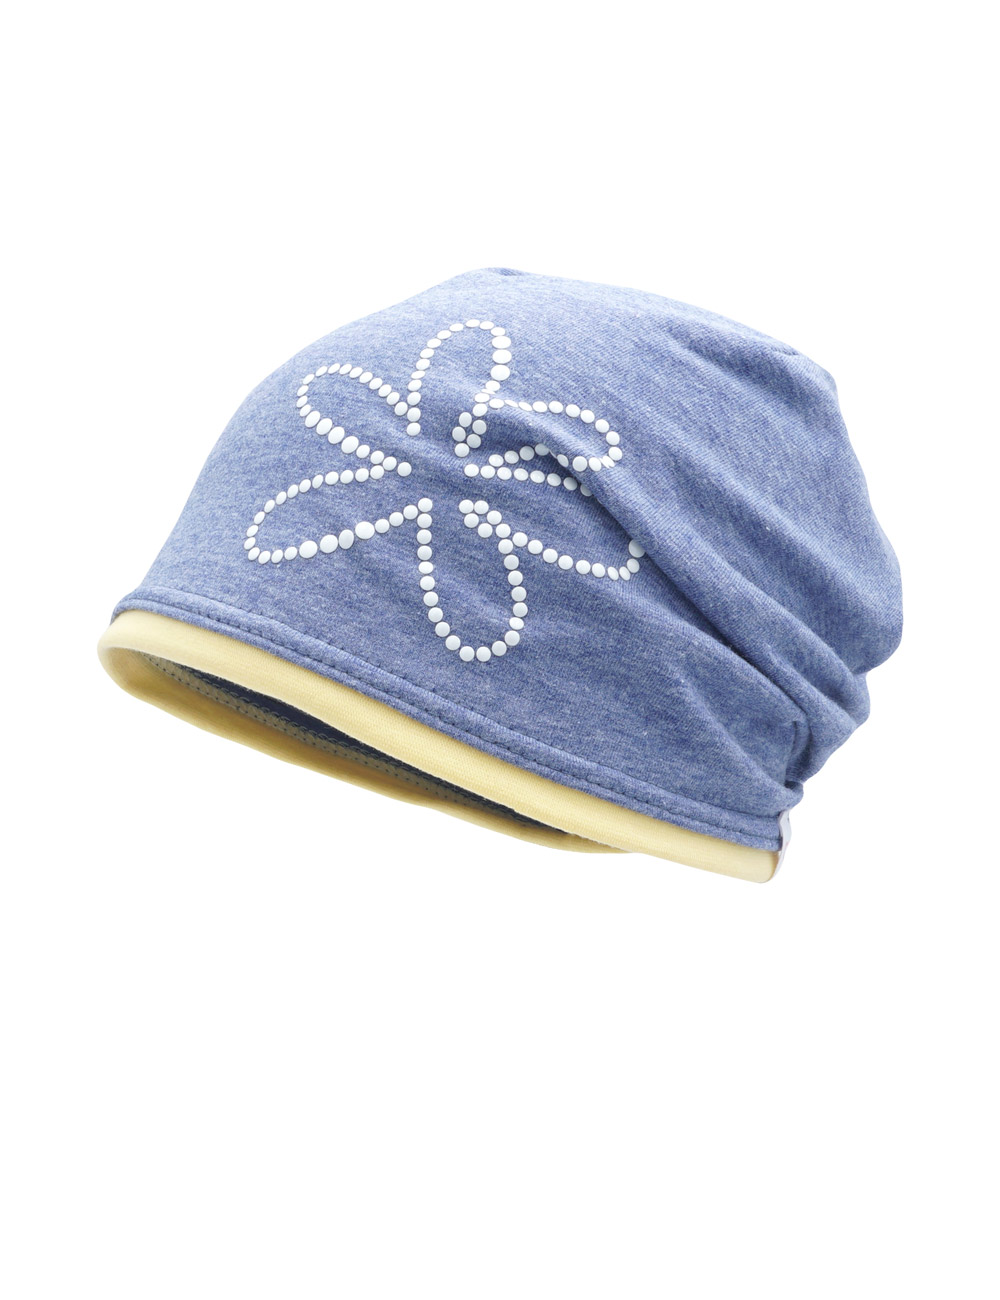 Beanie middle, Rollrand 49 Maximo. Farbe: jeansmeliert/narzisse, Größe: 49